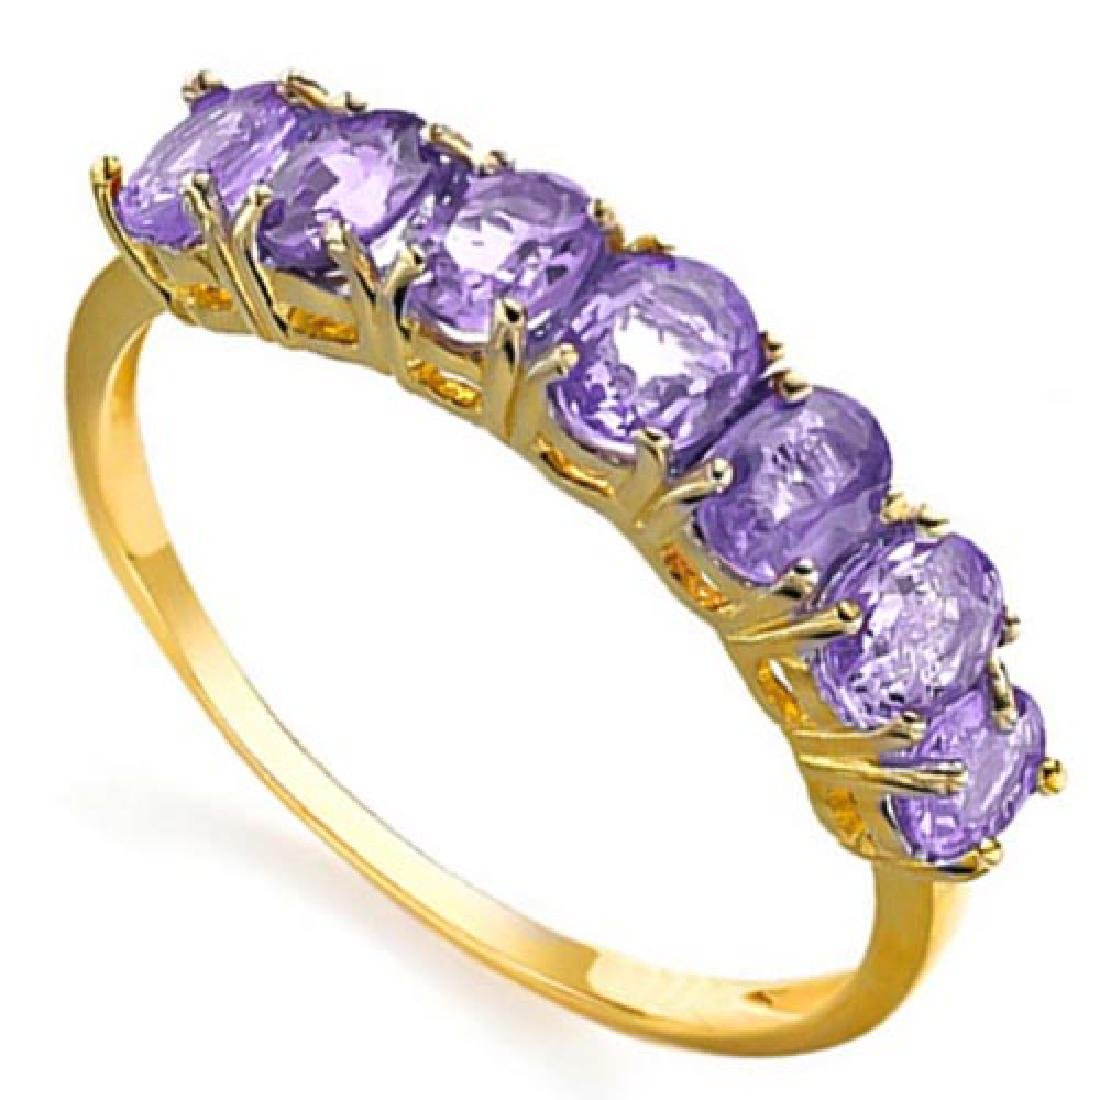 1.17 CTW GENUINE AMETHYST 10KT SOLID YELLOW GOLD RING